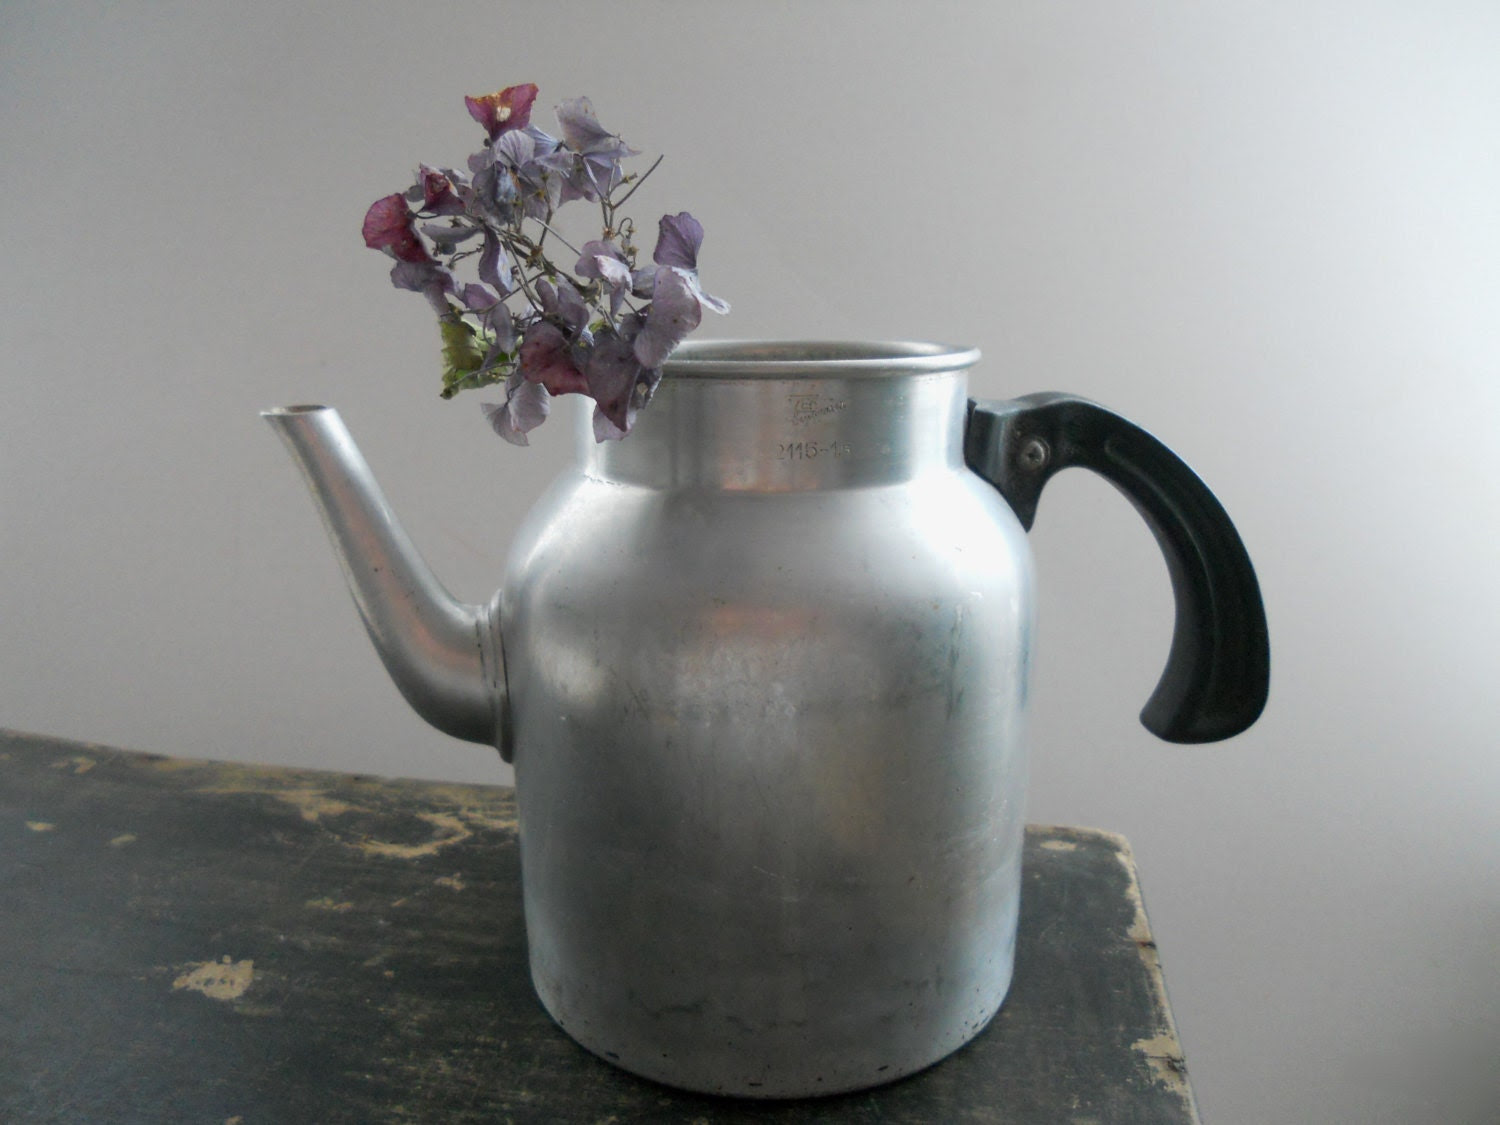 Vintage aluminium jug Aluminium can 1.5liter can Farmhouse kitchen decor - TasteVintage